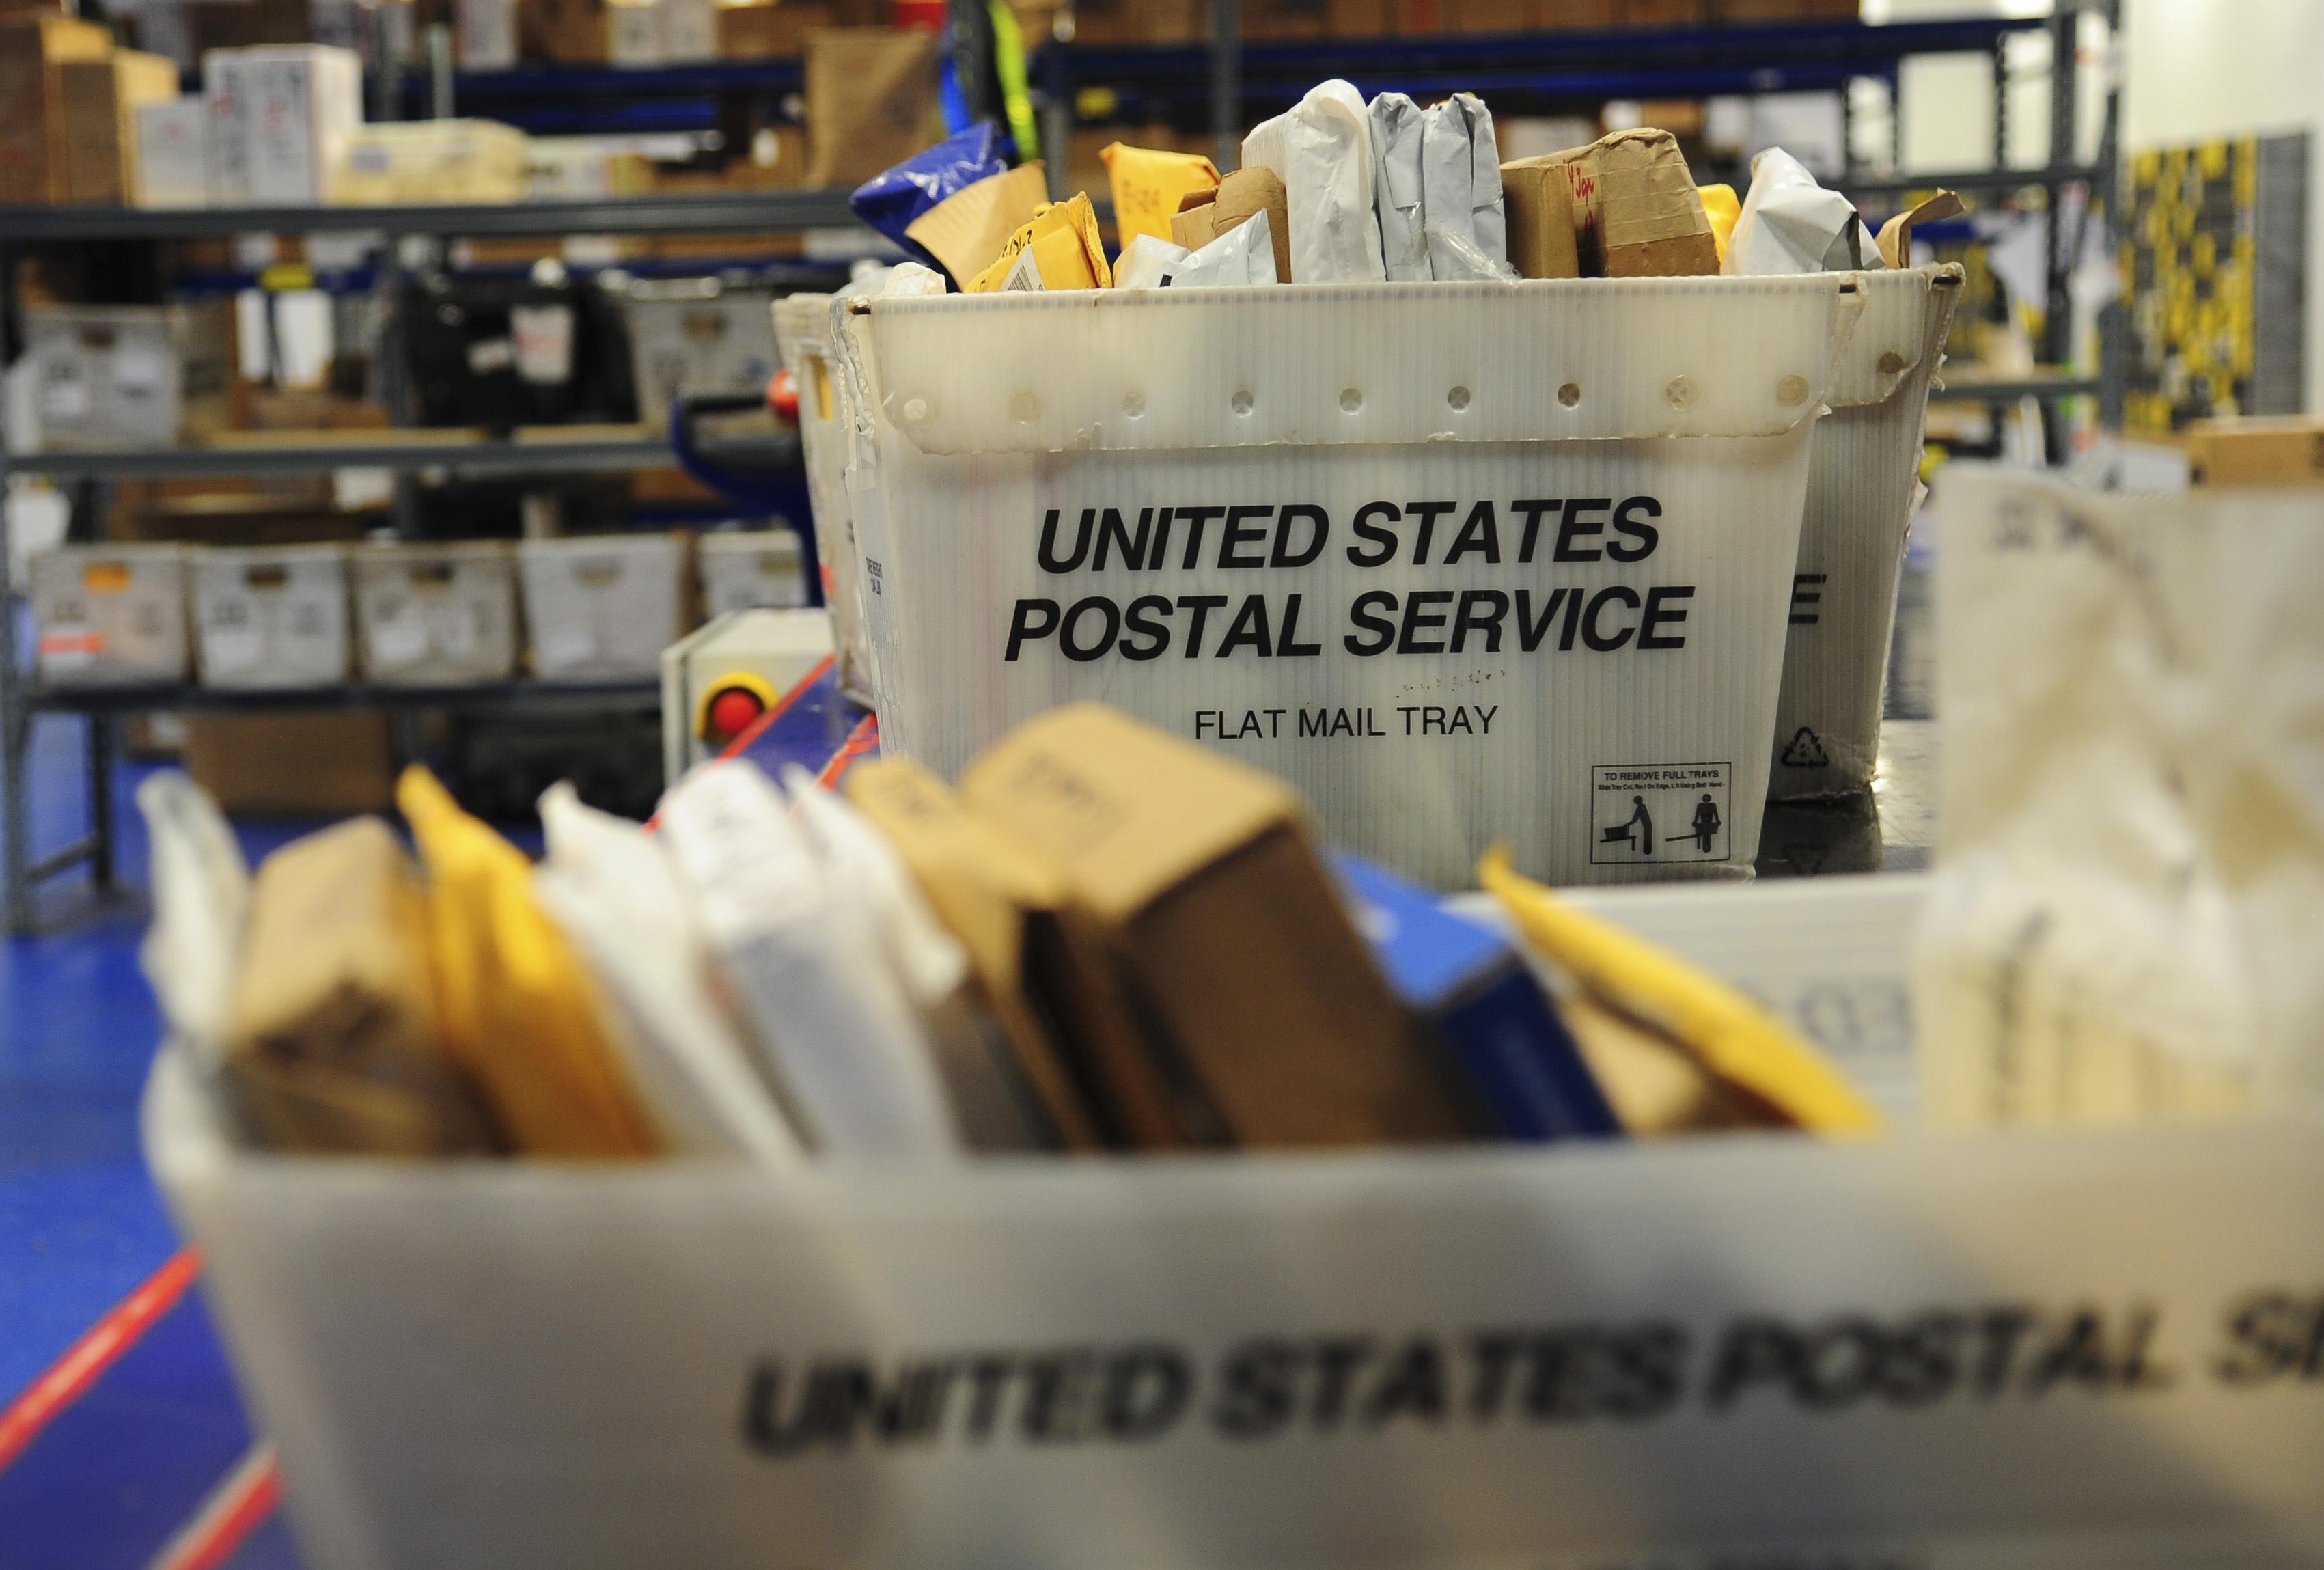 Suburban Postal Employees Convicted in Drug Delivery Ring